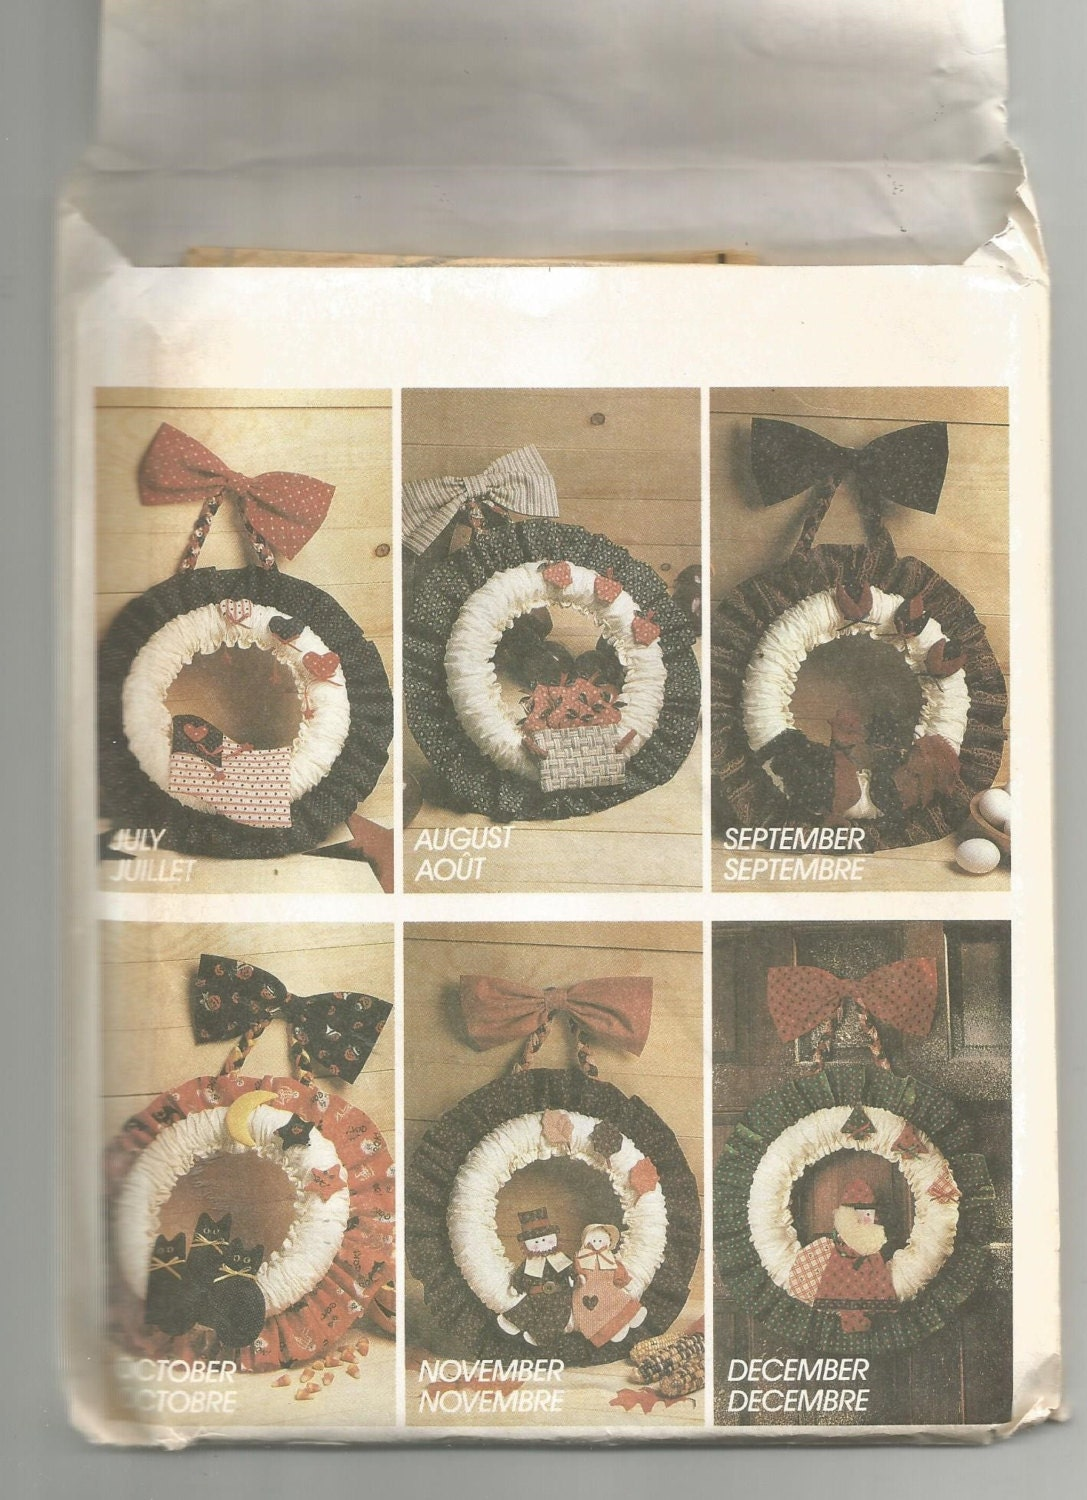 3881 Mccalls Crafts Sewing Pattern Seasonal Fabric Wreaths Decoartions Home Decor Vintage Uncut